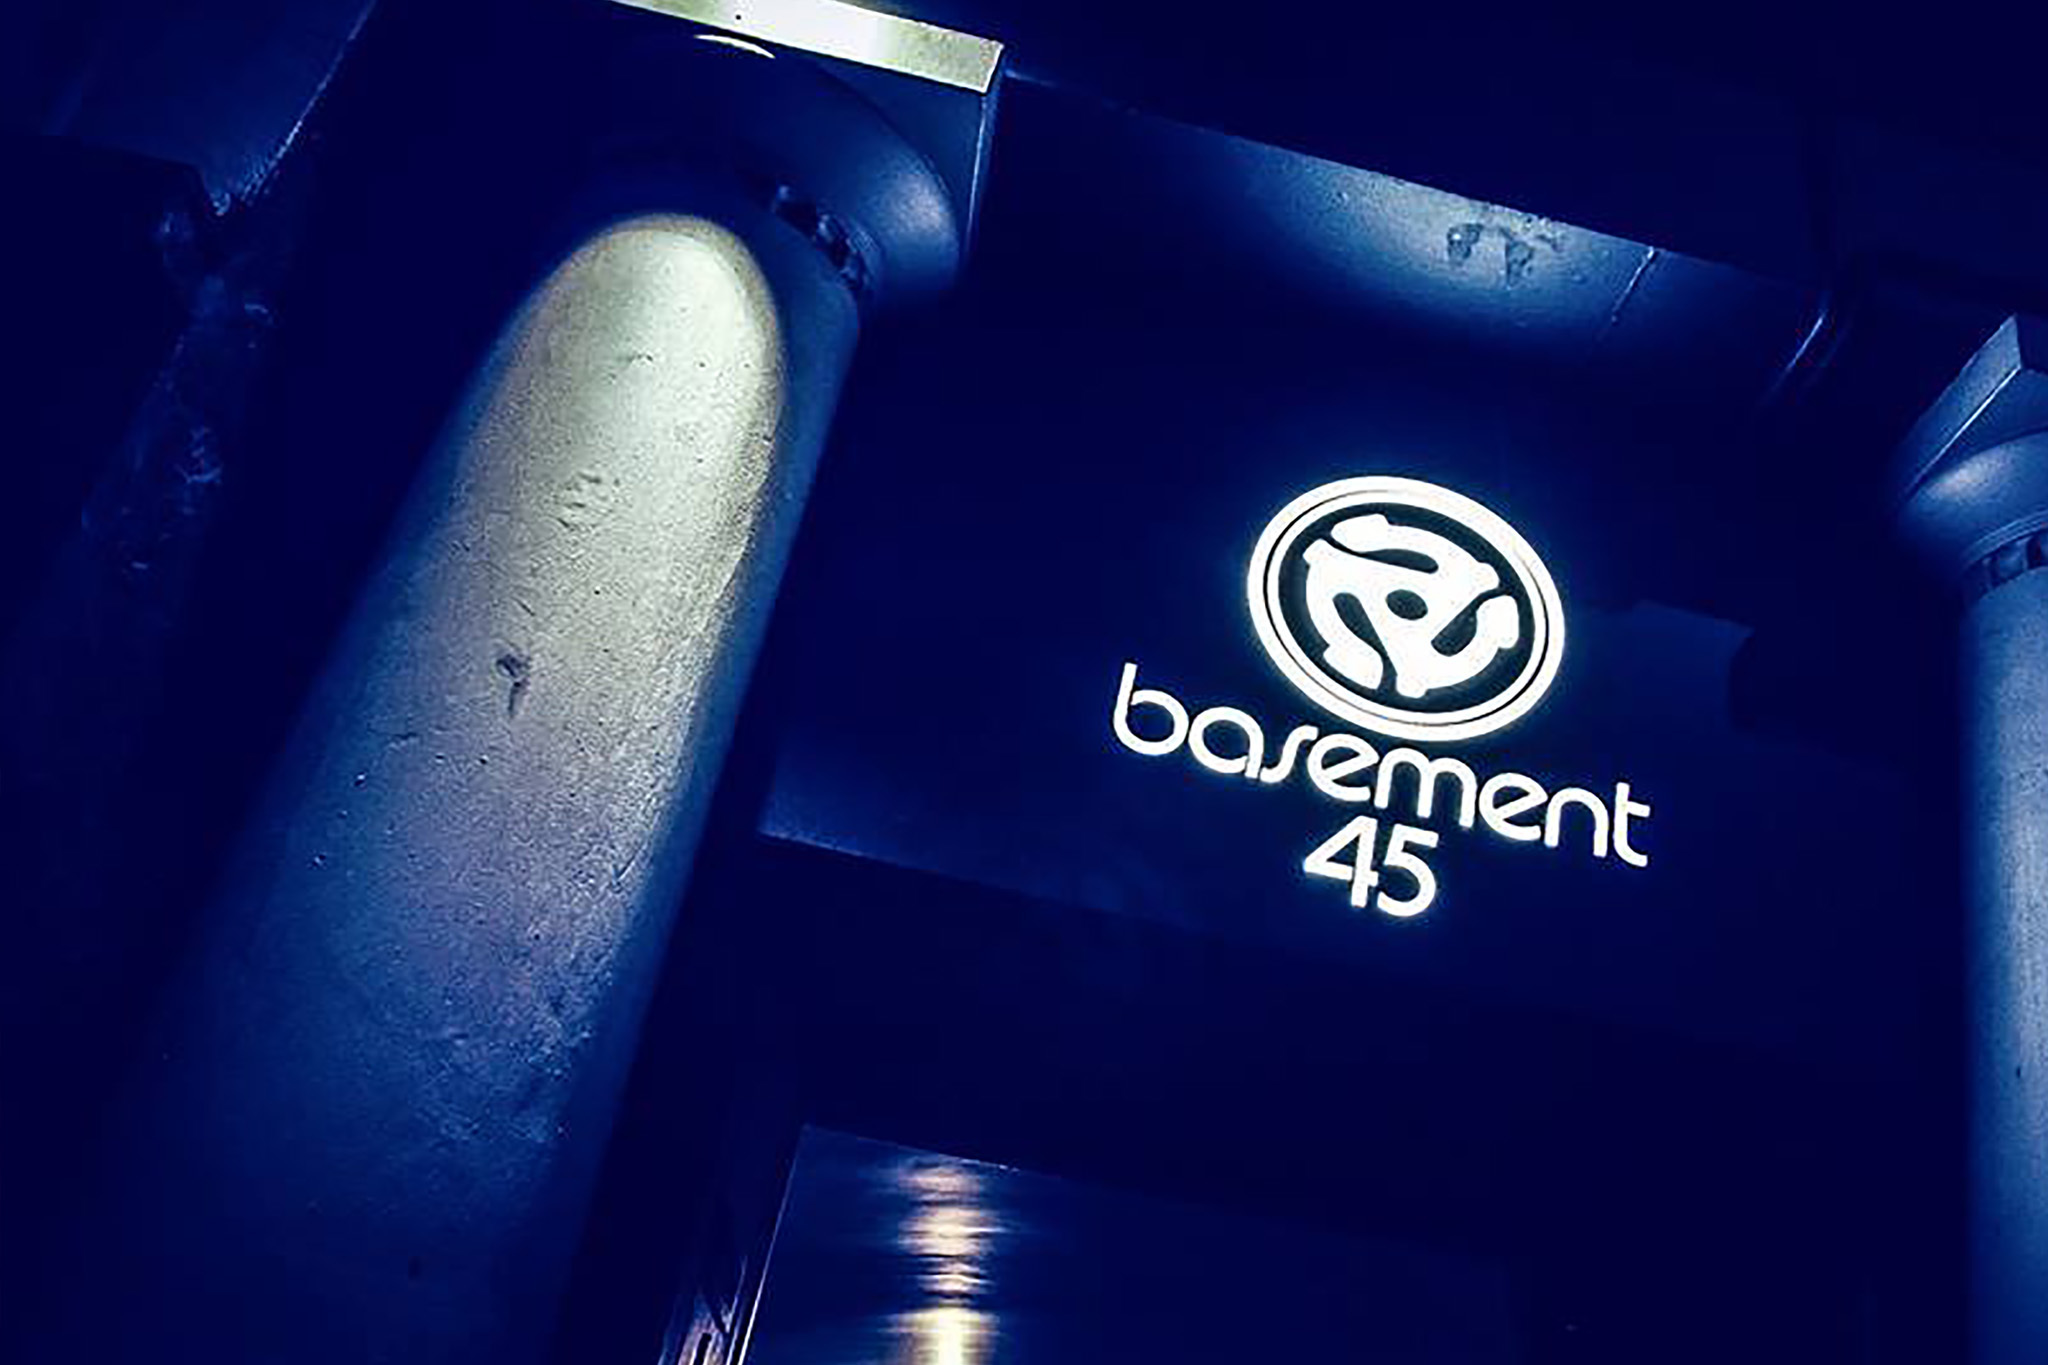 Basement 45, Bristol, night club